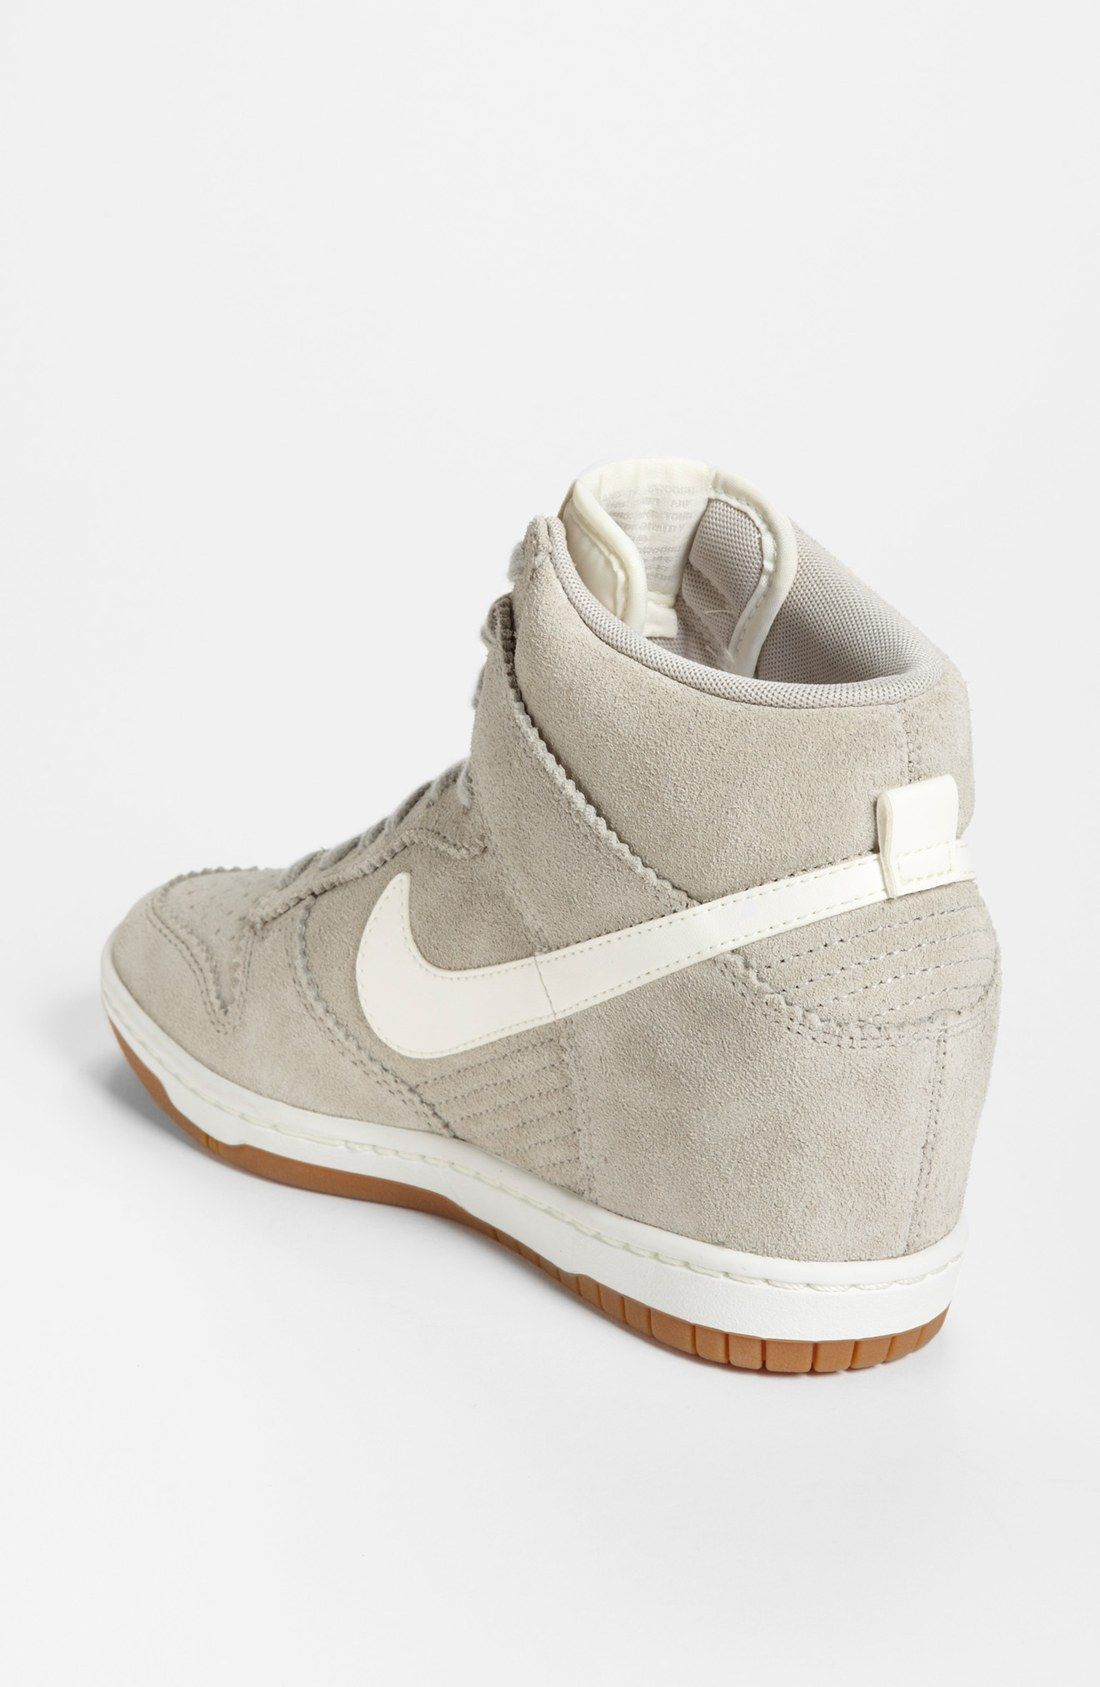 Nike  Dunk Sky Hi  Wedge Sneaker For Women  bcaae90cd168